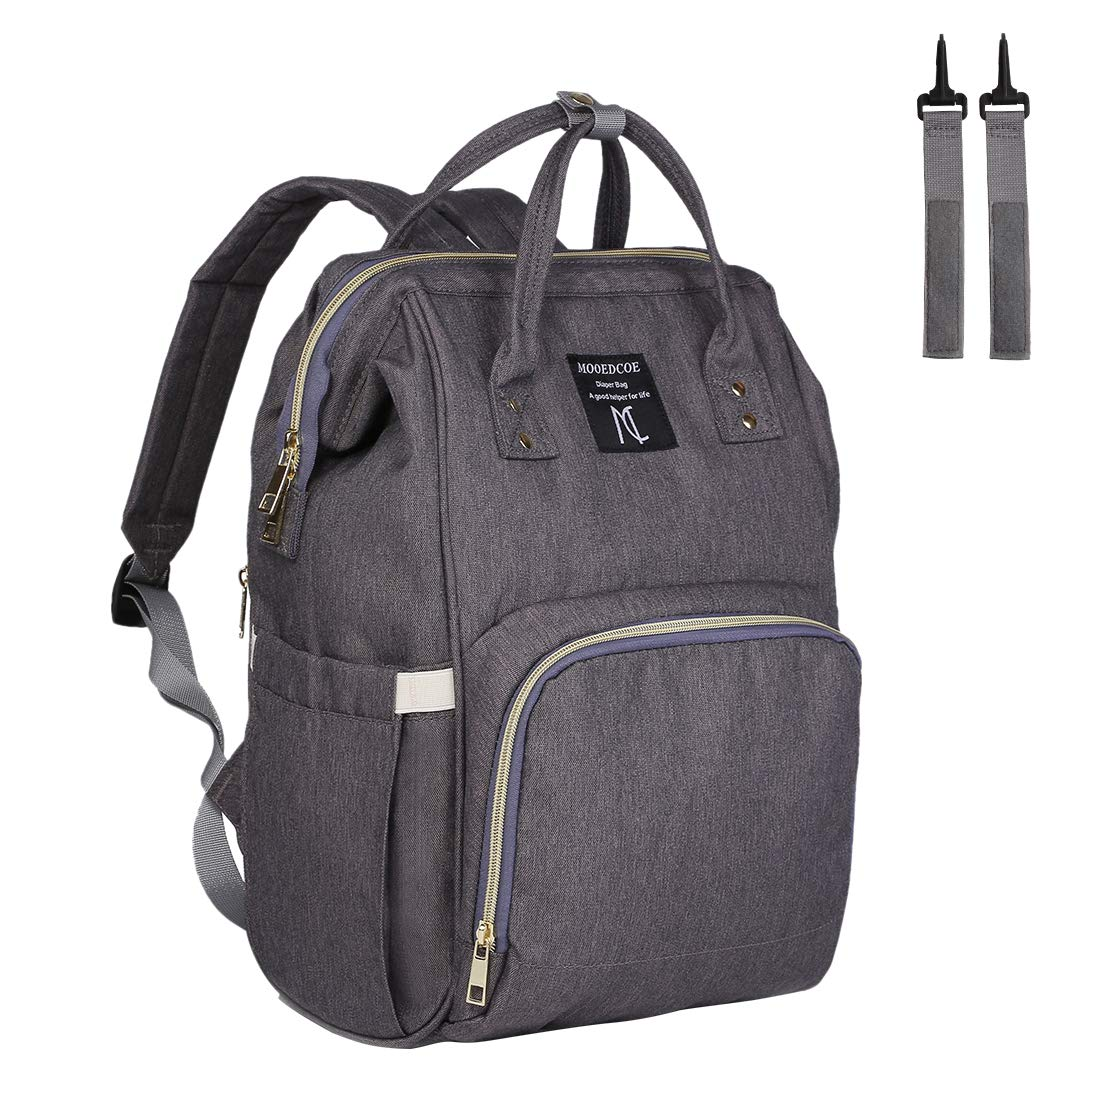 64b175e09f38c Mooedcoe Baby Nappy Changing Bag Rucksack Diaper Bag Nappy Changing Backpack  for Mom and Dad (Grey)  Amazon.co.uk  Baby